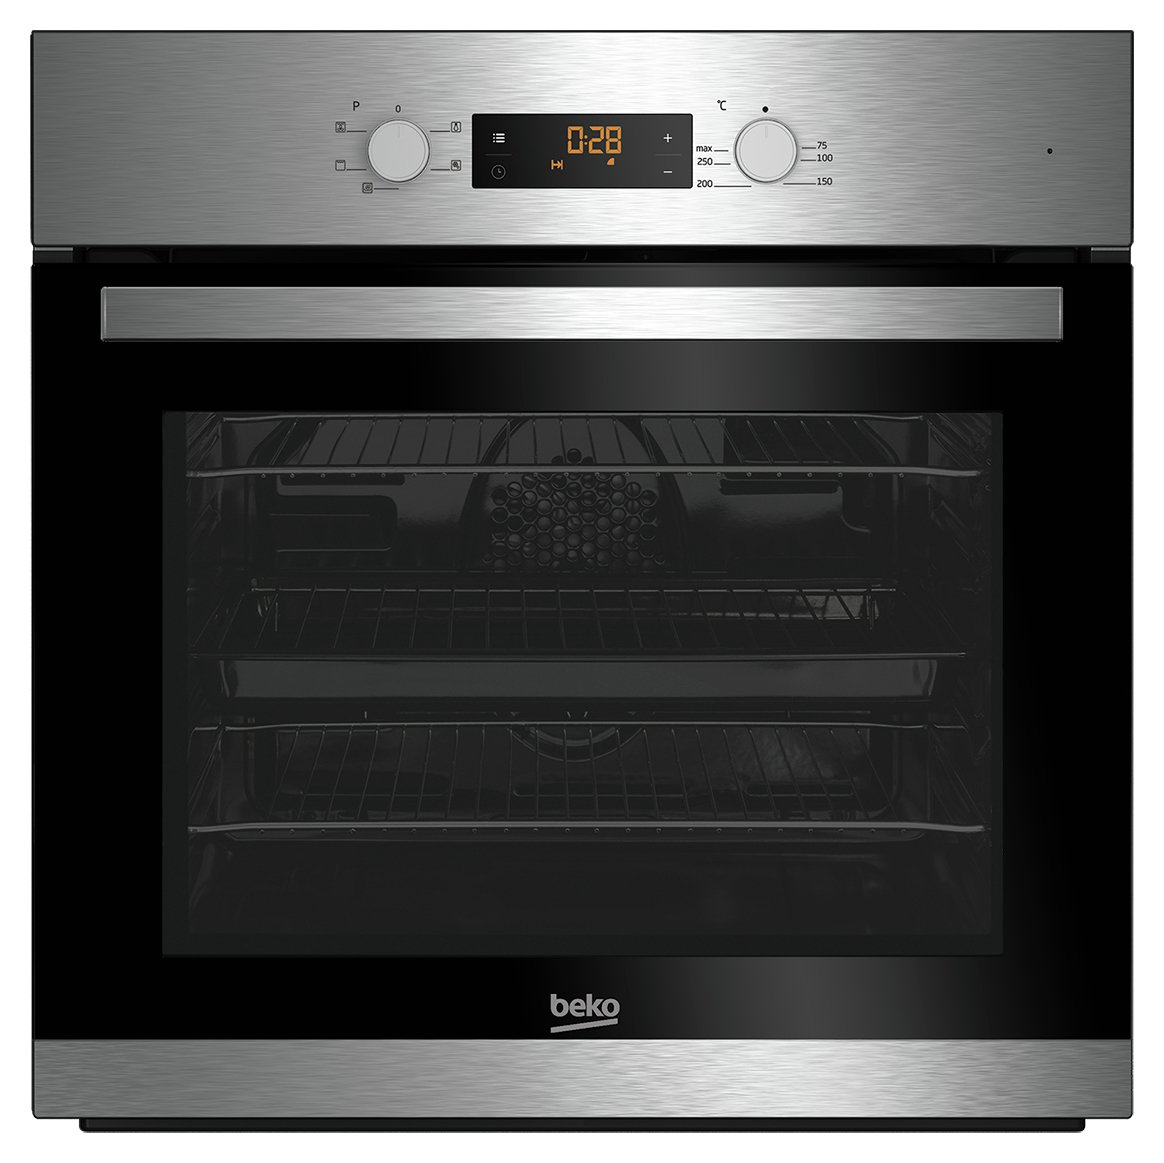 Image of Beko BAIF22300X Single Oven - Stainless Steel With Installation